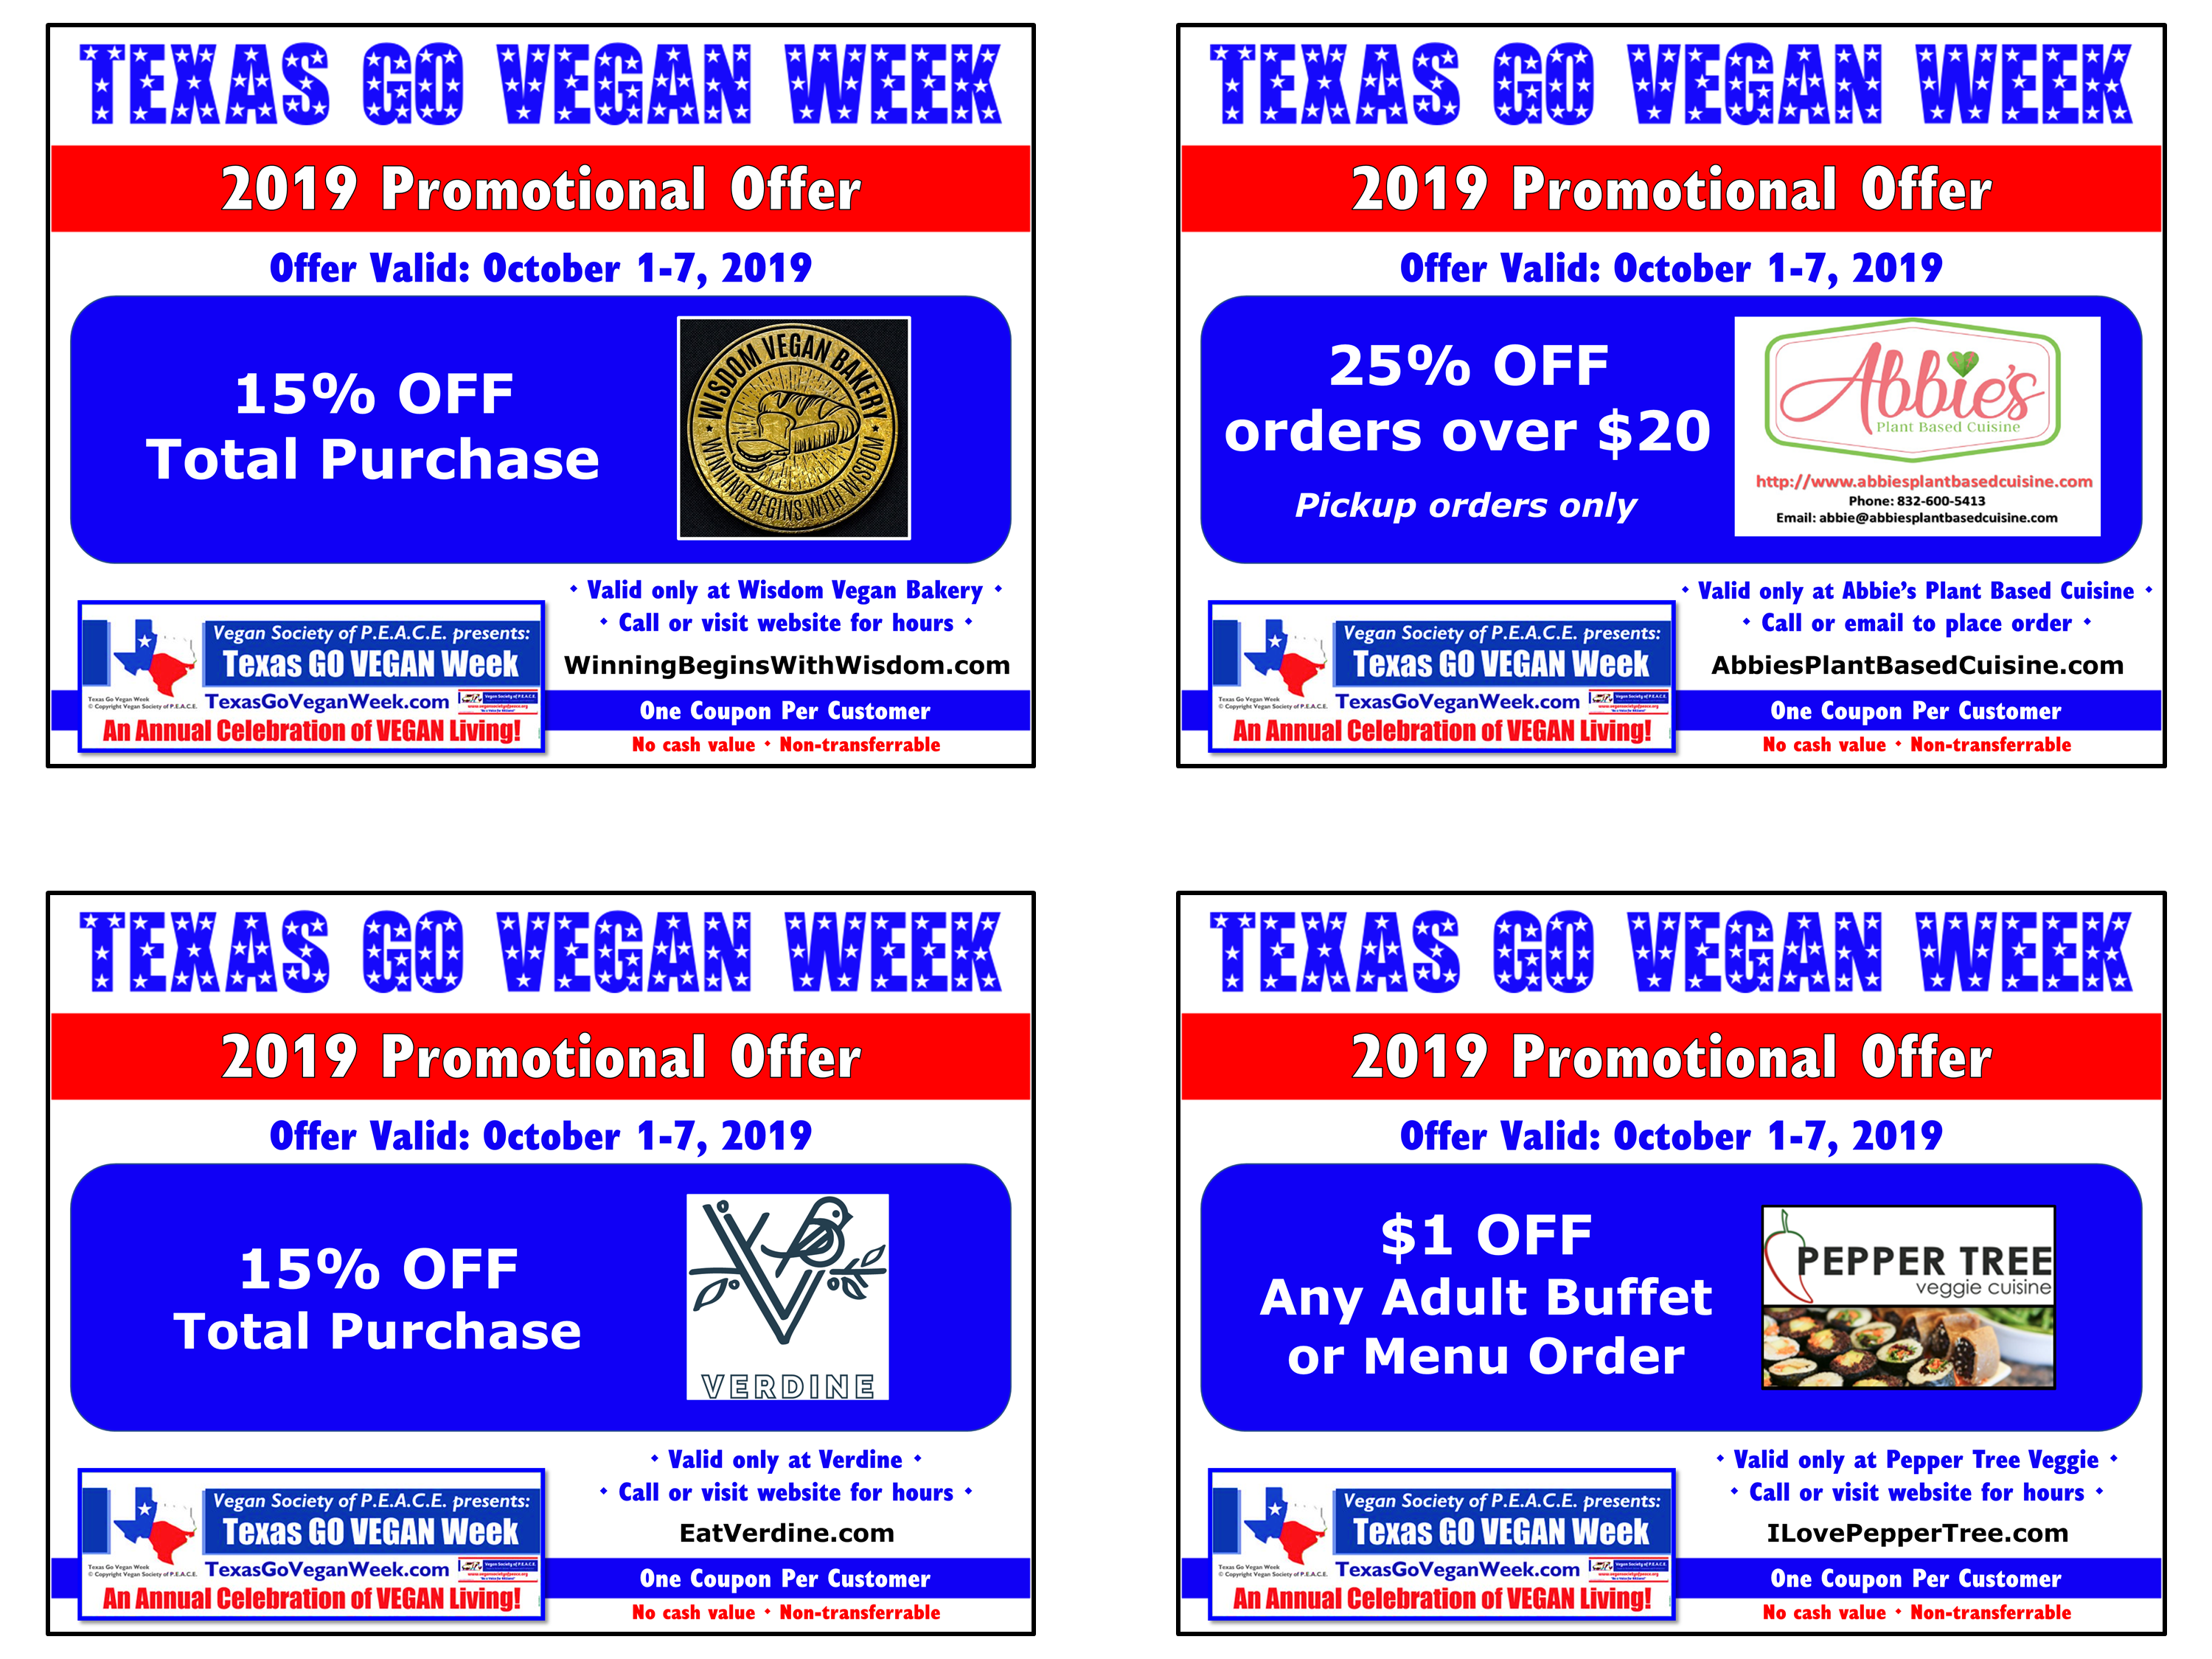 Texas Go Vegan Week 2019 Coupons 5-8